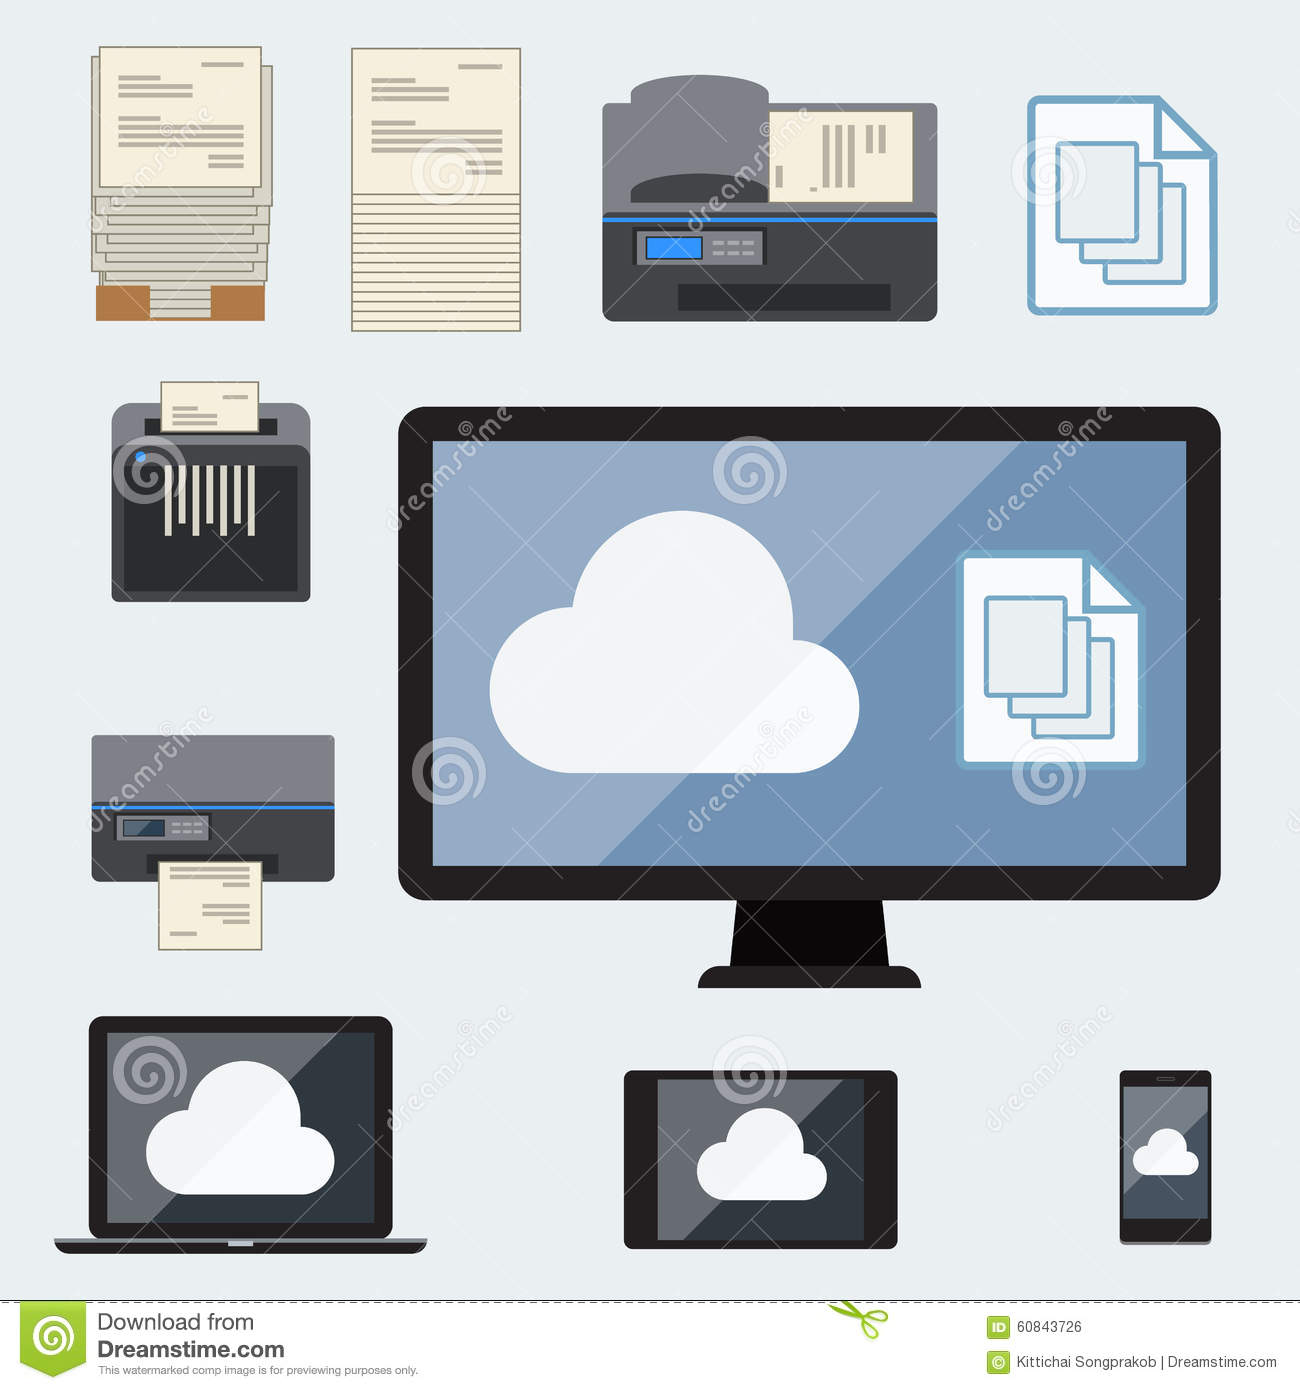 Document storage cloud document storage for business for Cloud document storage for business